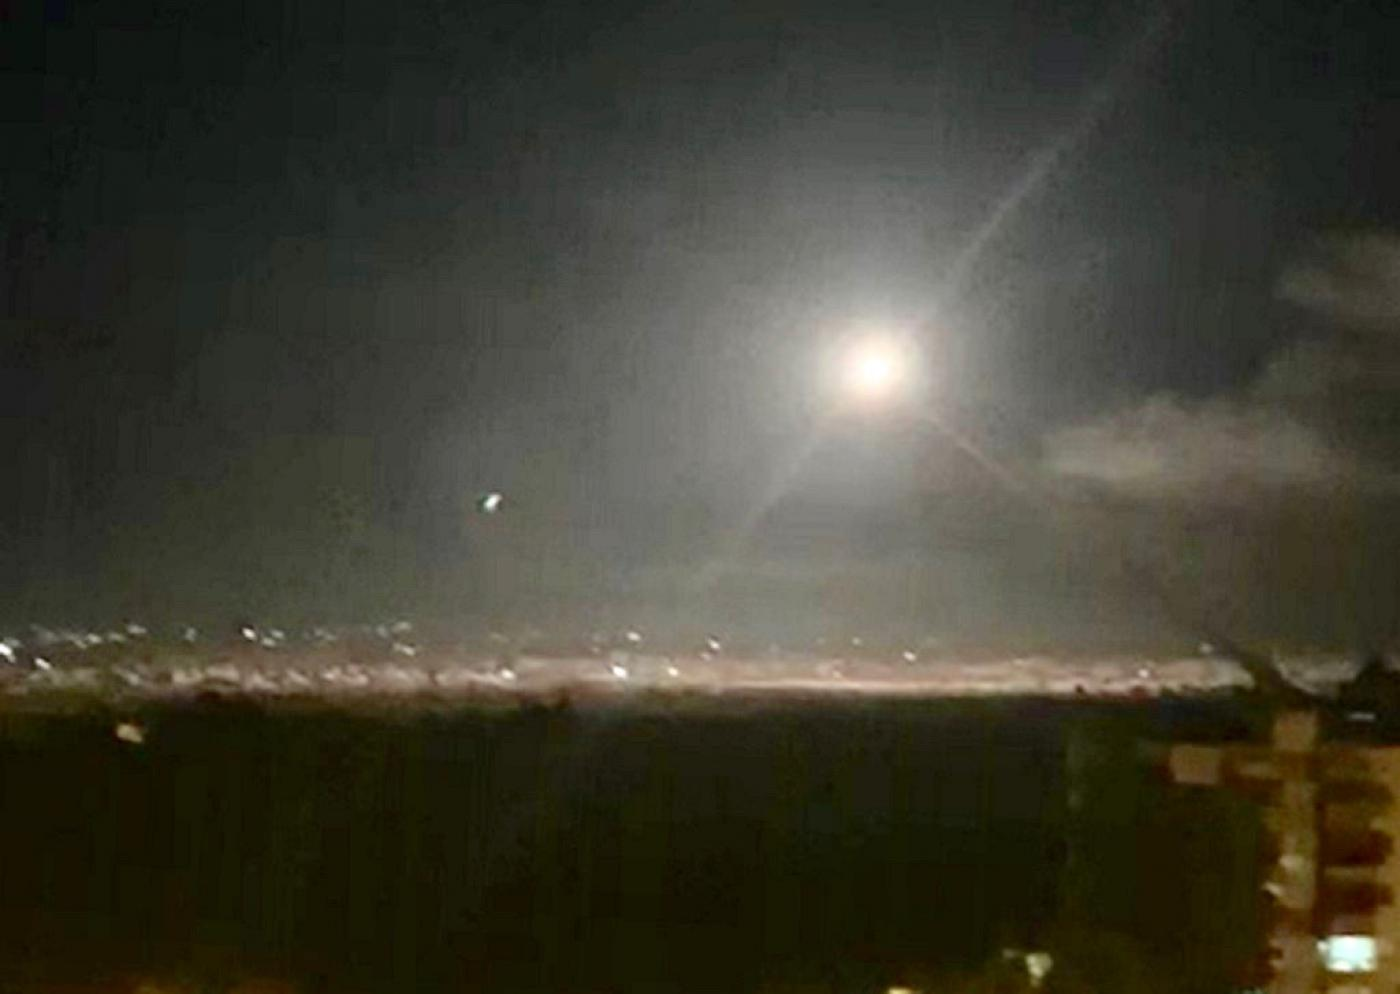 Israel airstrikes target Iran-linked military base in Syria, state media reports